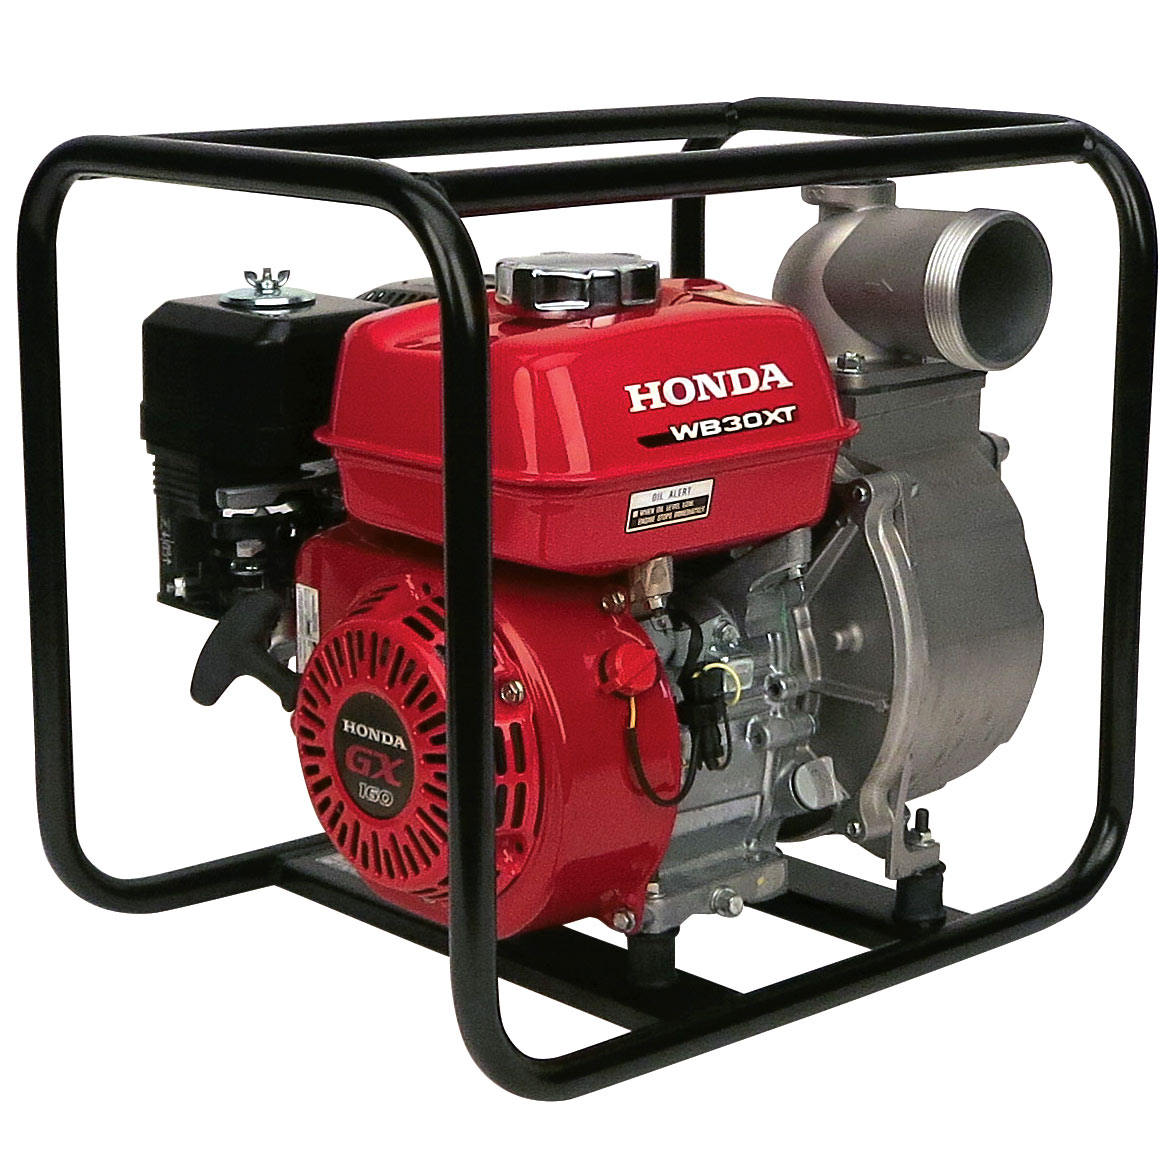 Marvelous How To Operate A Honda Wb30X Water Pump Honda Lawn Parts Blog Wiring 101 Mecadwellnesstrialsorg